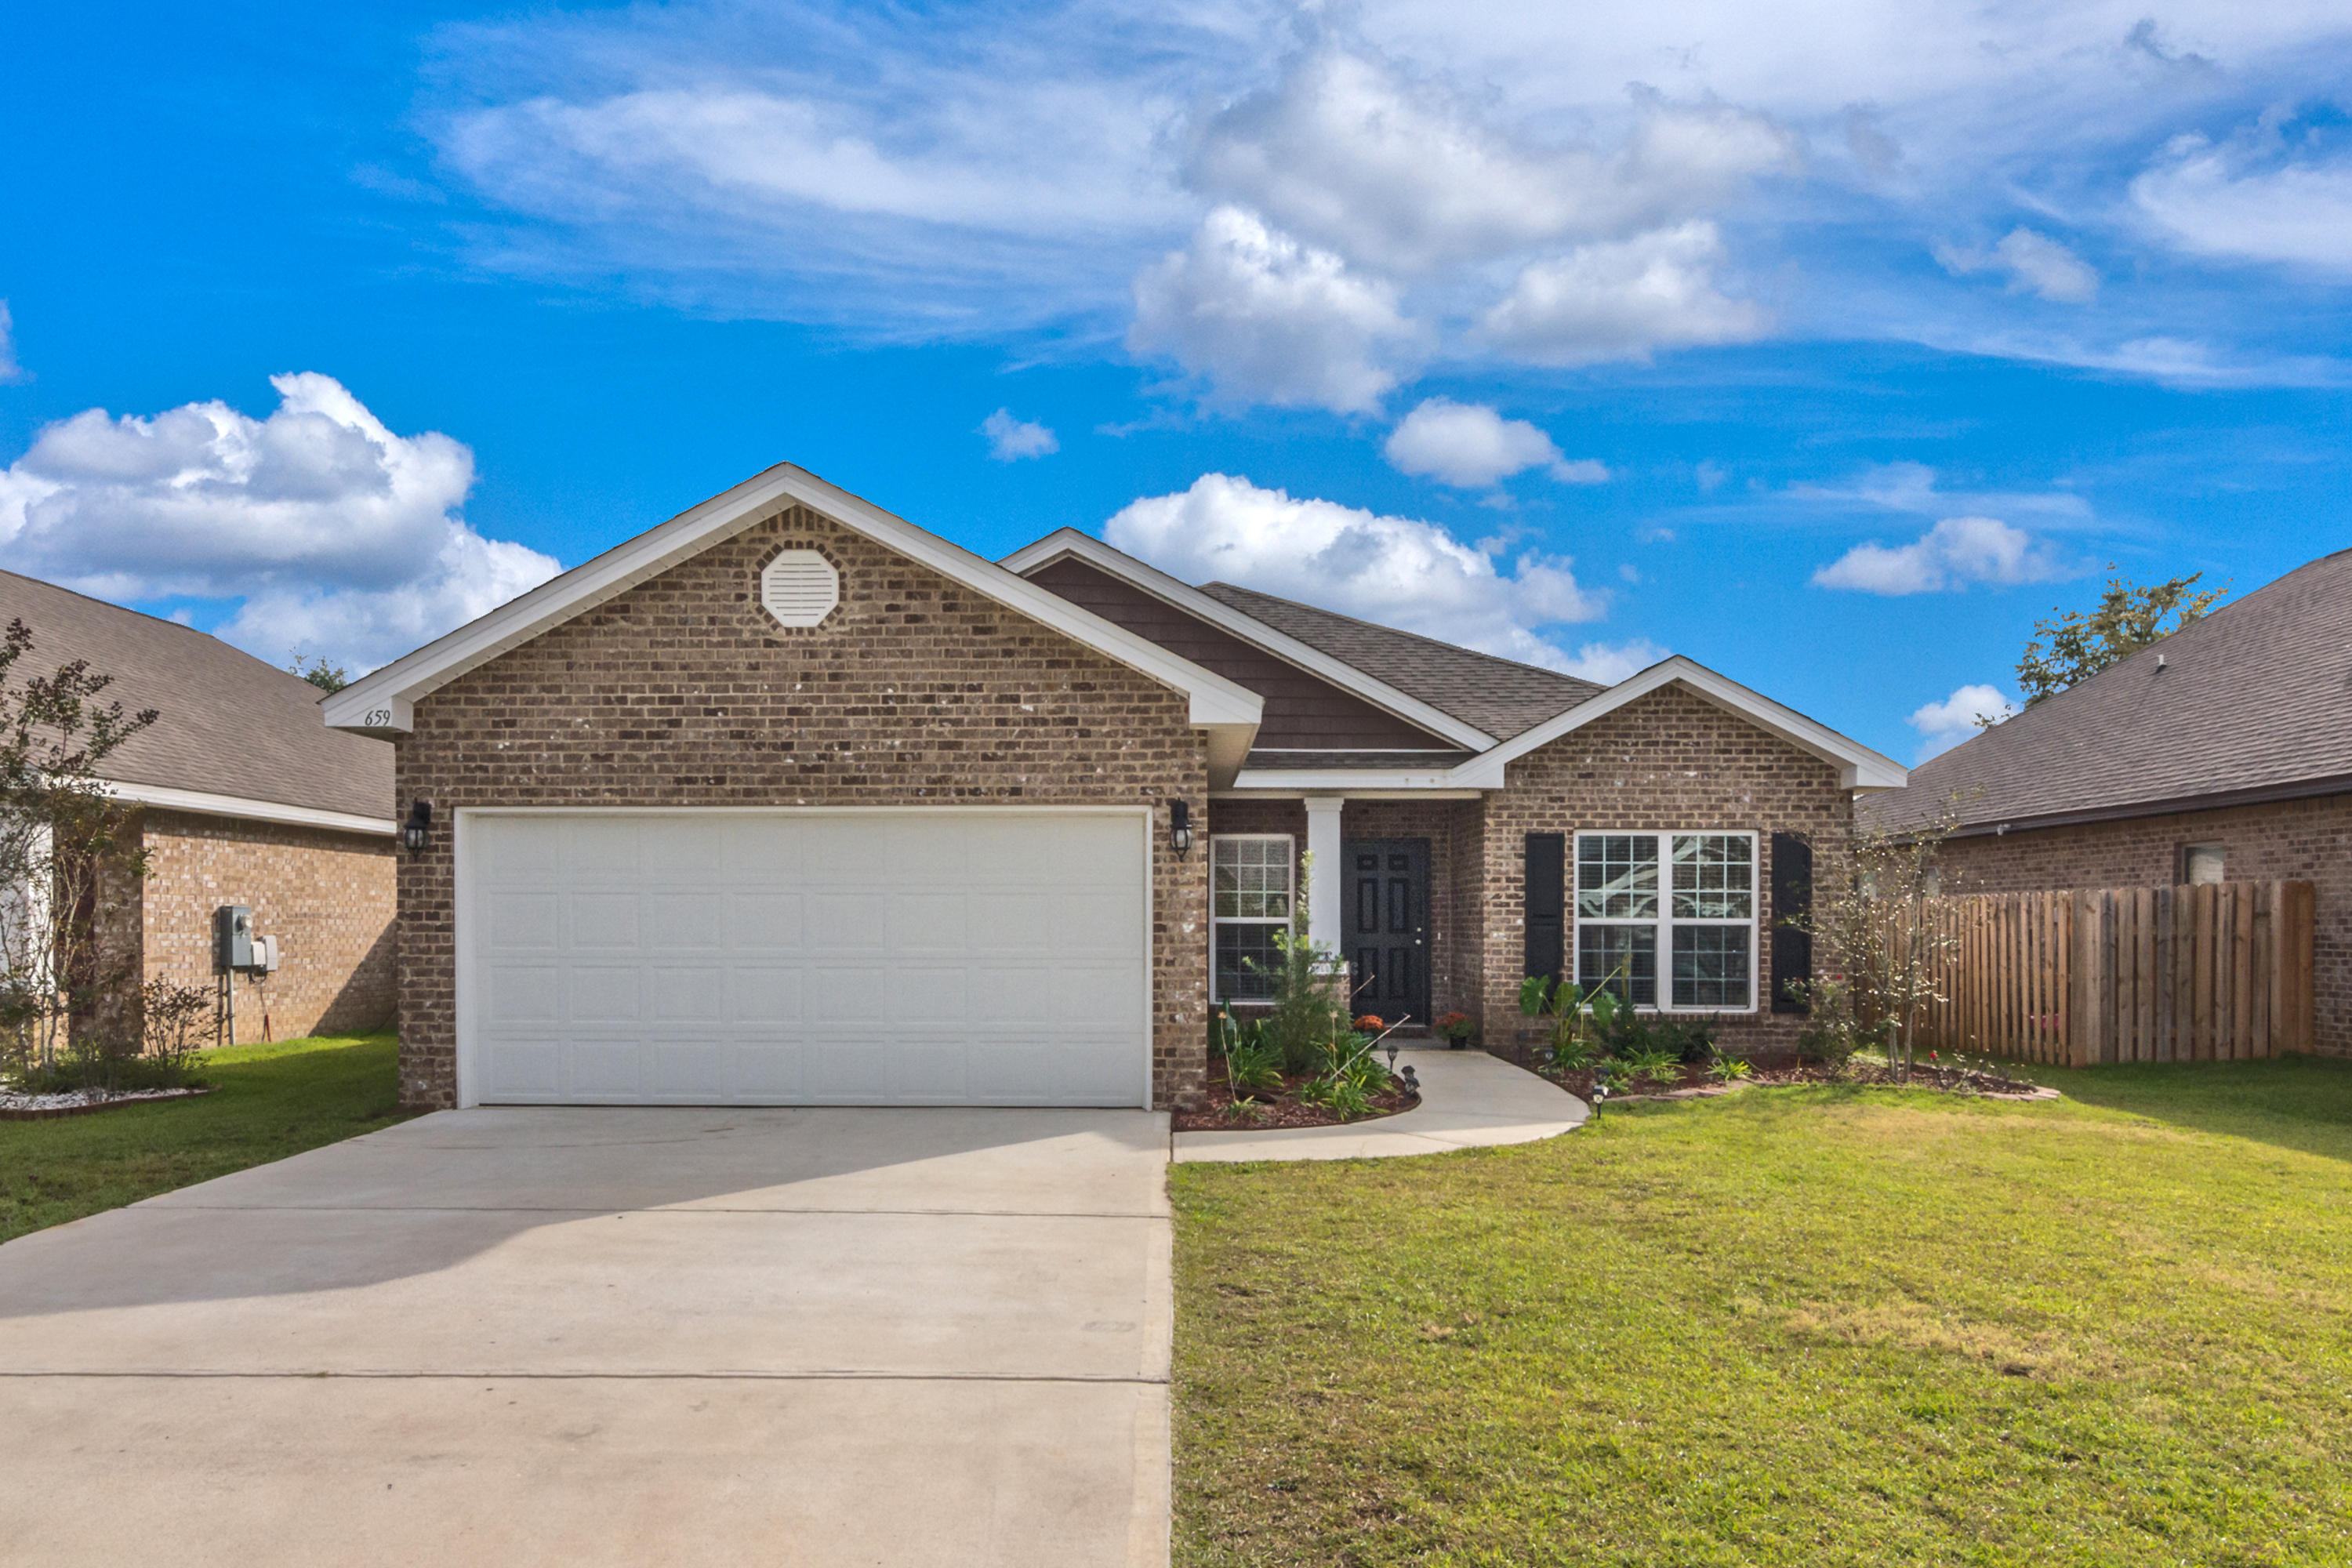 Photo of home for sale at 659 Teal, Crestview FL